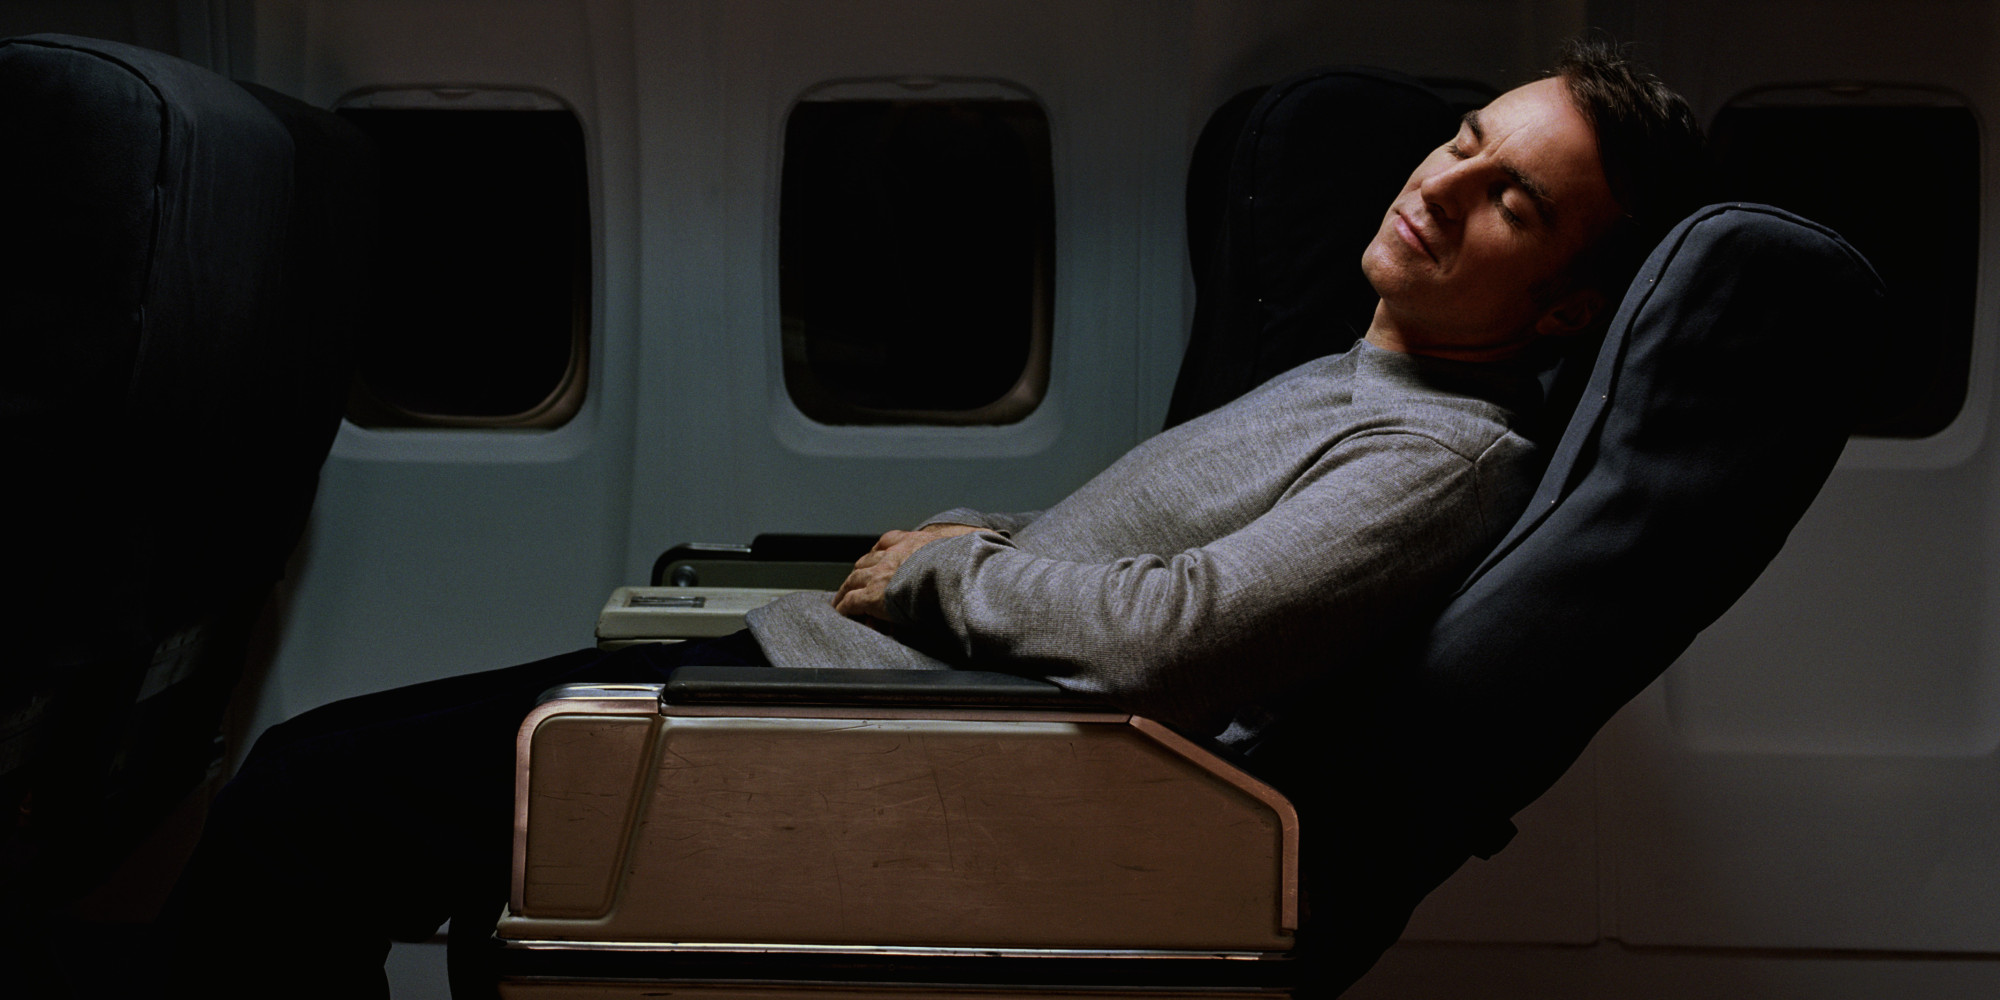 Facing Trouble Sleeping on an Airplane? Beat it With These Tips!